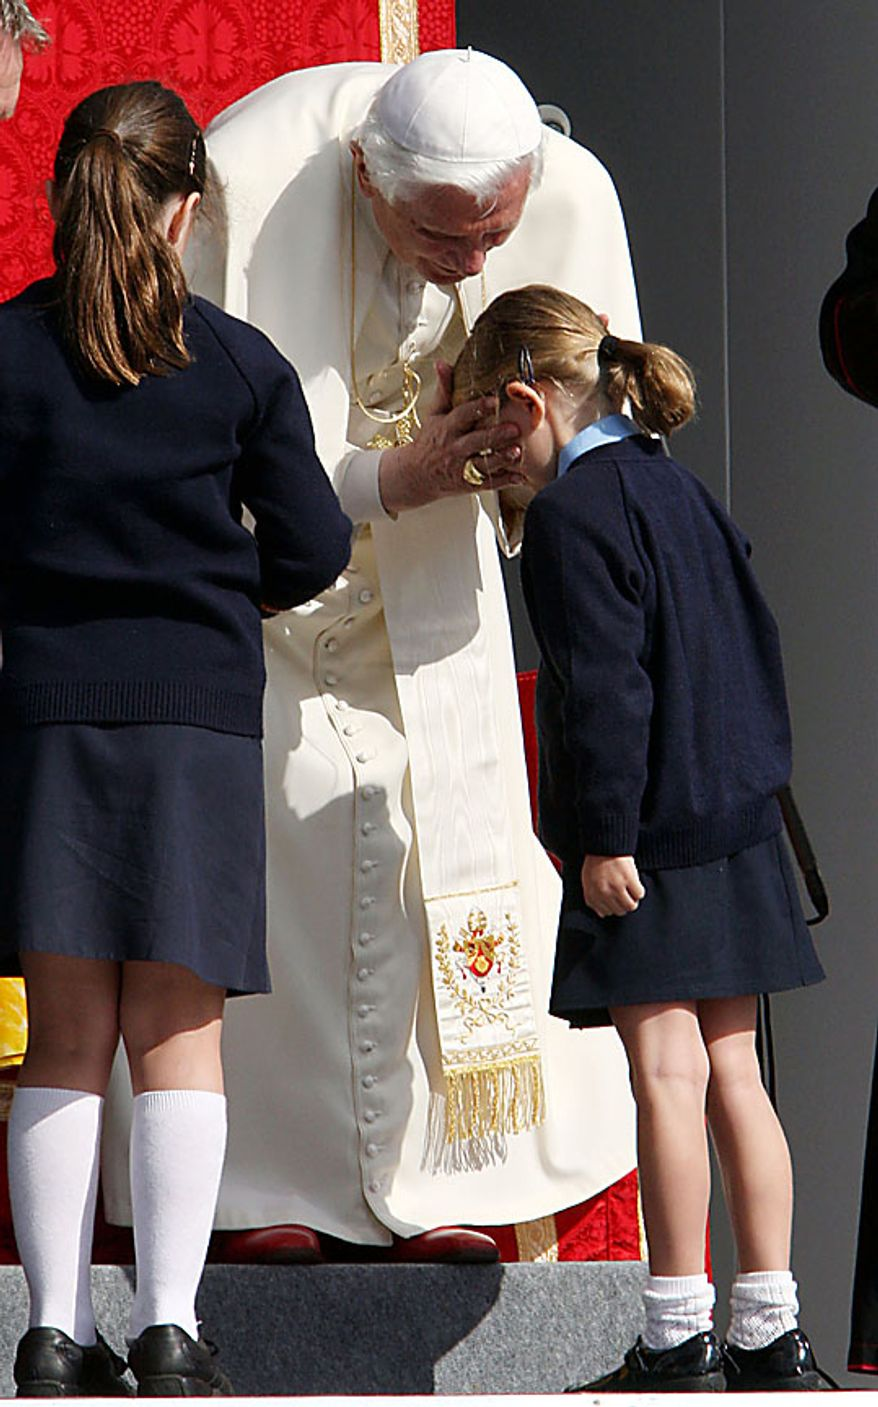 Children from the Holy Cross Primary School in Plymouth western England meet Pope Benedict XVI during a celebration of Catholic education at St Mary's University College, Twickenham, London. Friday Sept. 17, 2010. Pope Benedict XVI is on the second day of  a four-day visit, the first-ever state visit by a Pope to Britain. (AP Photo/ Steve Parsons/Pool)